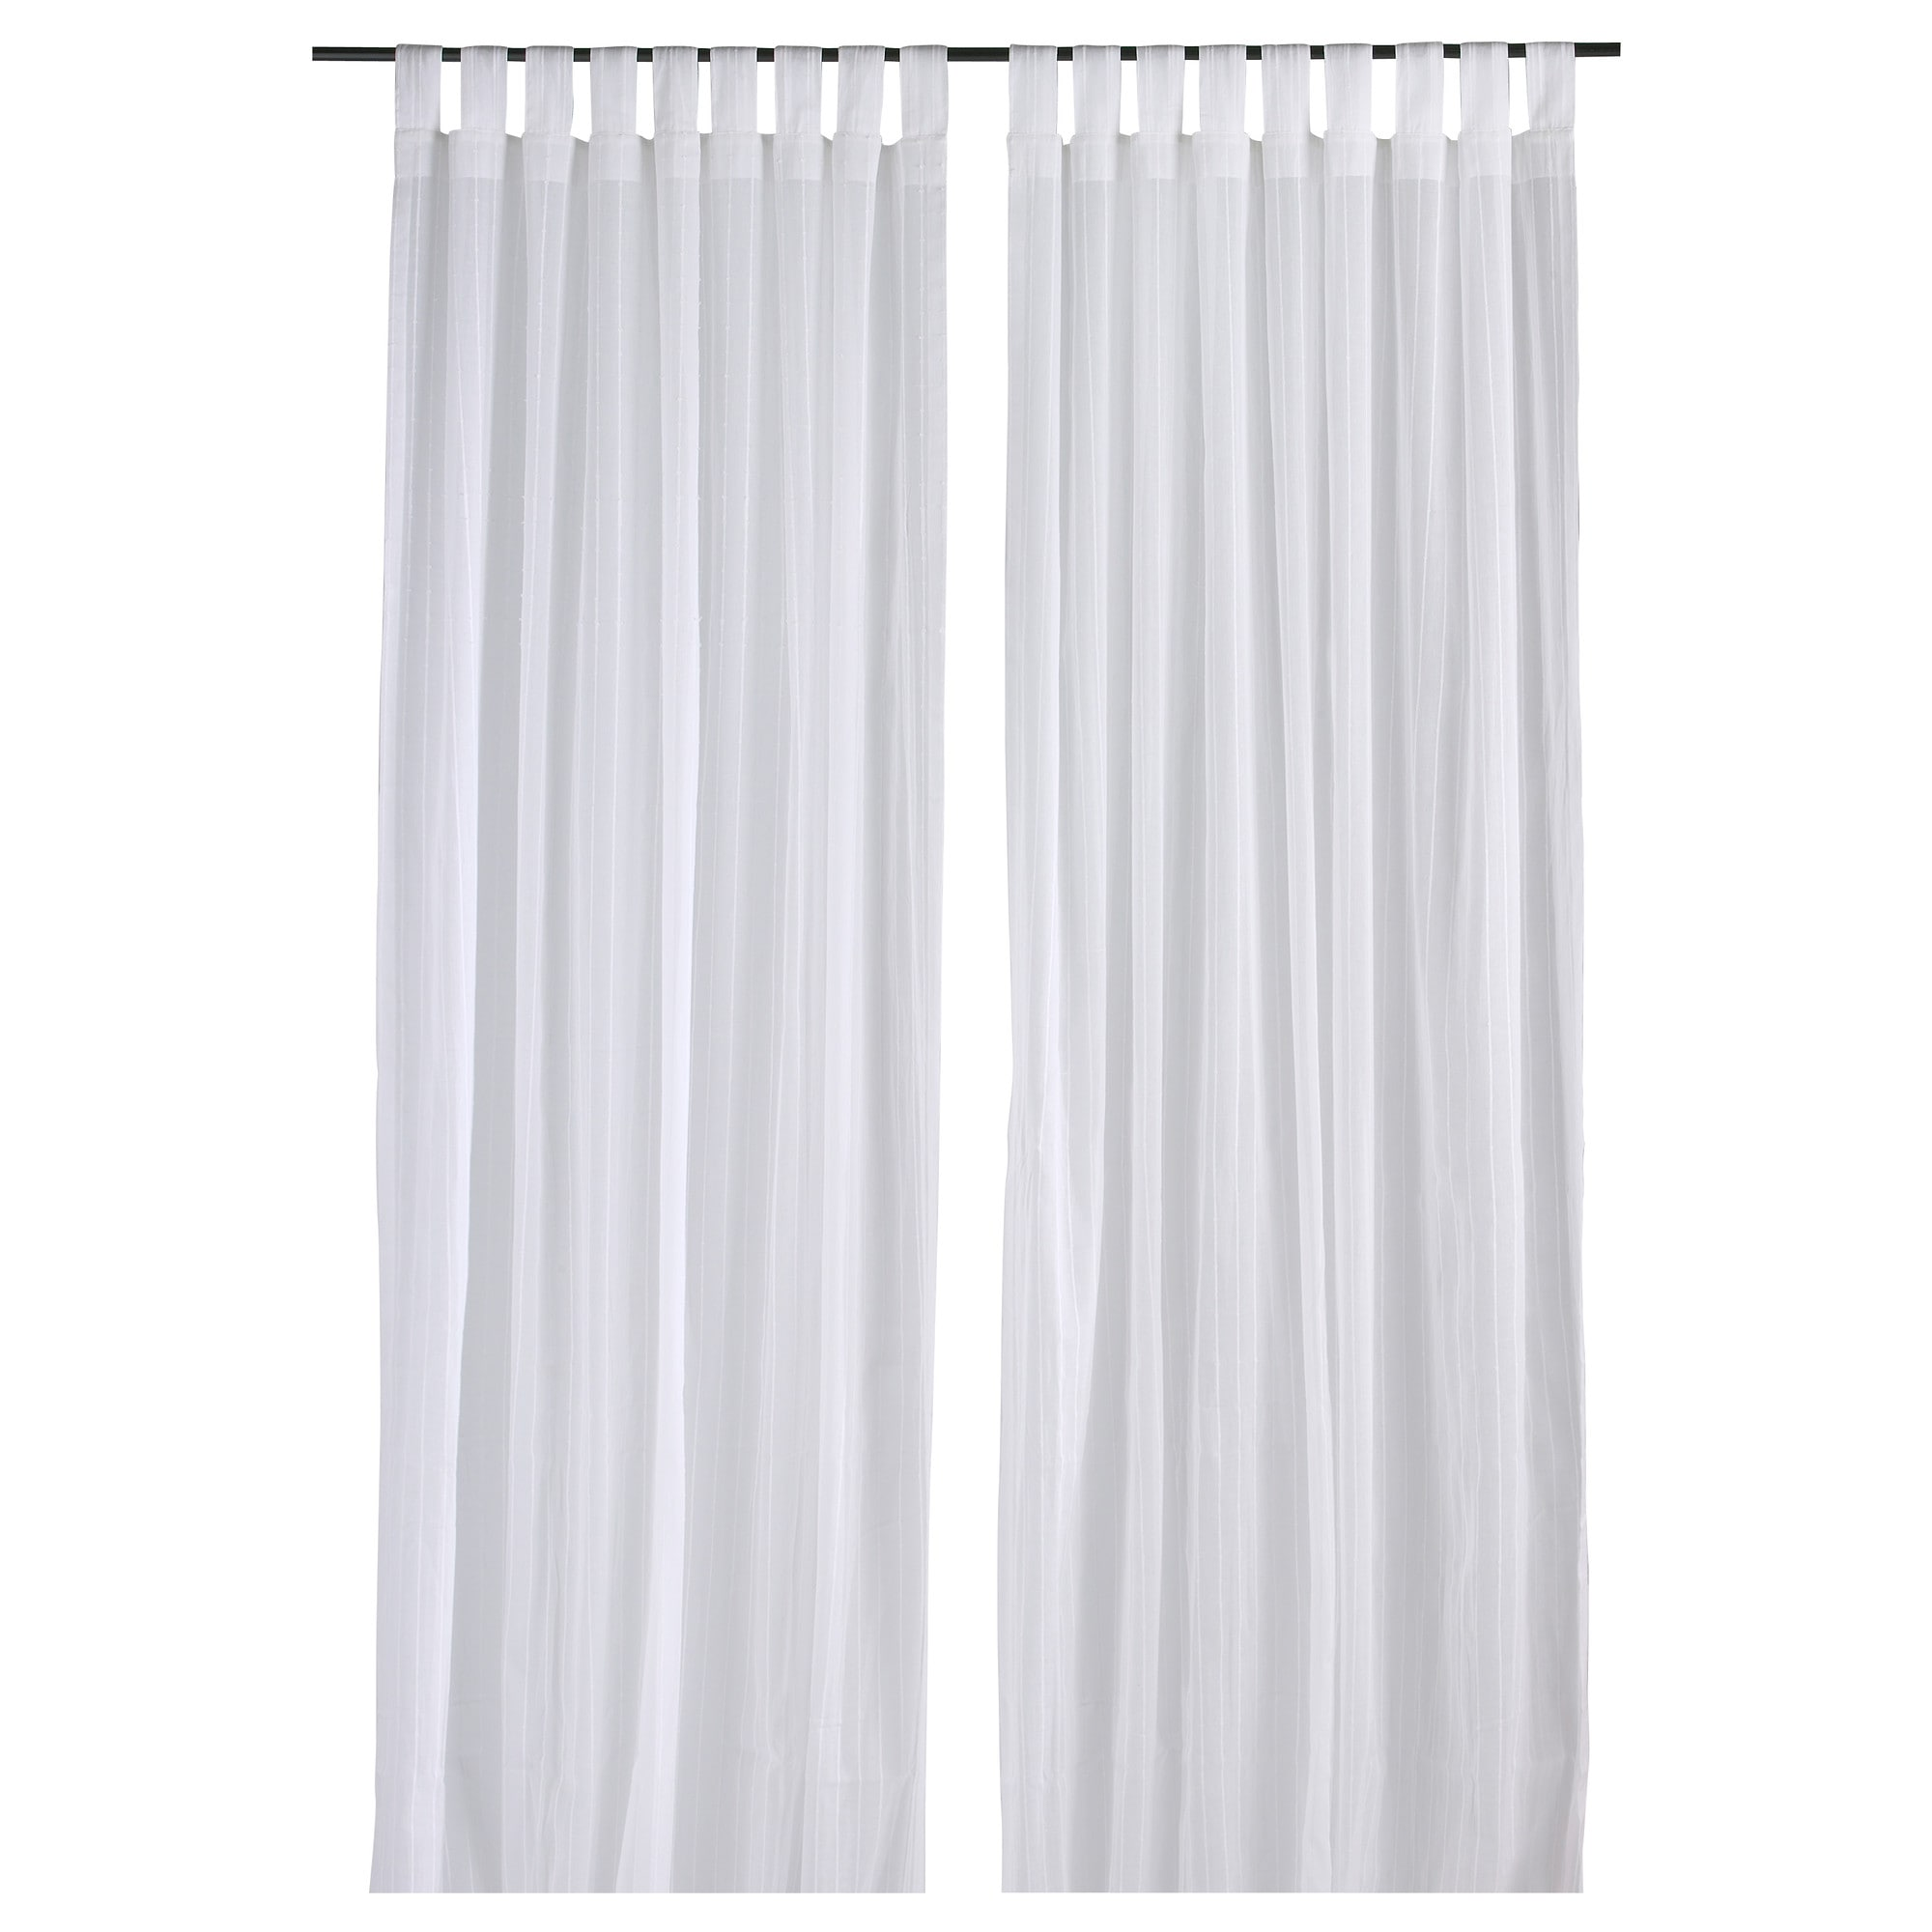 Curtains ideas curtains ikea inspiring pictures of curtains designs and decorating ideas - Pictures of curtains ...